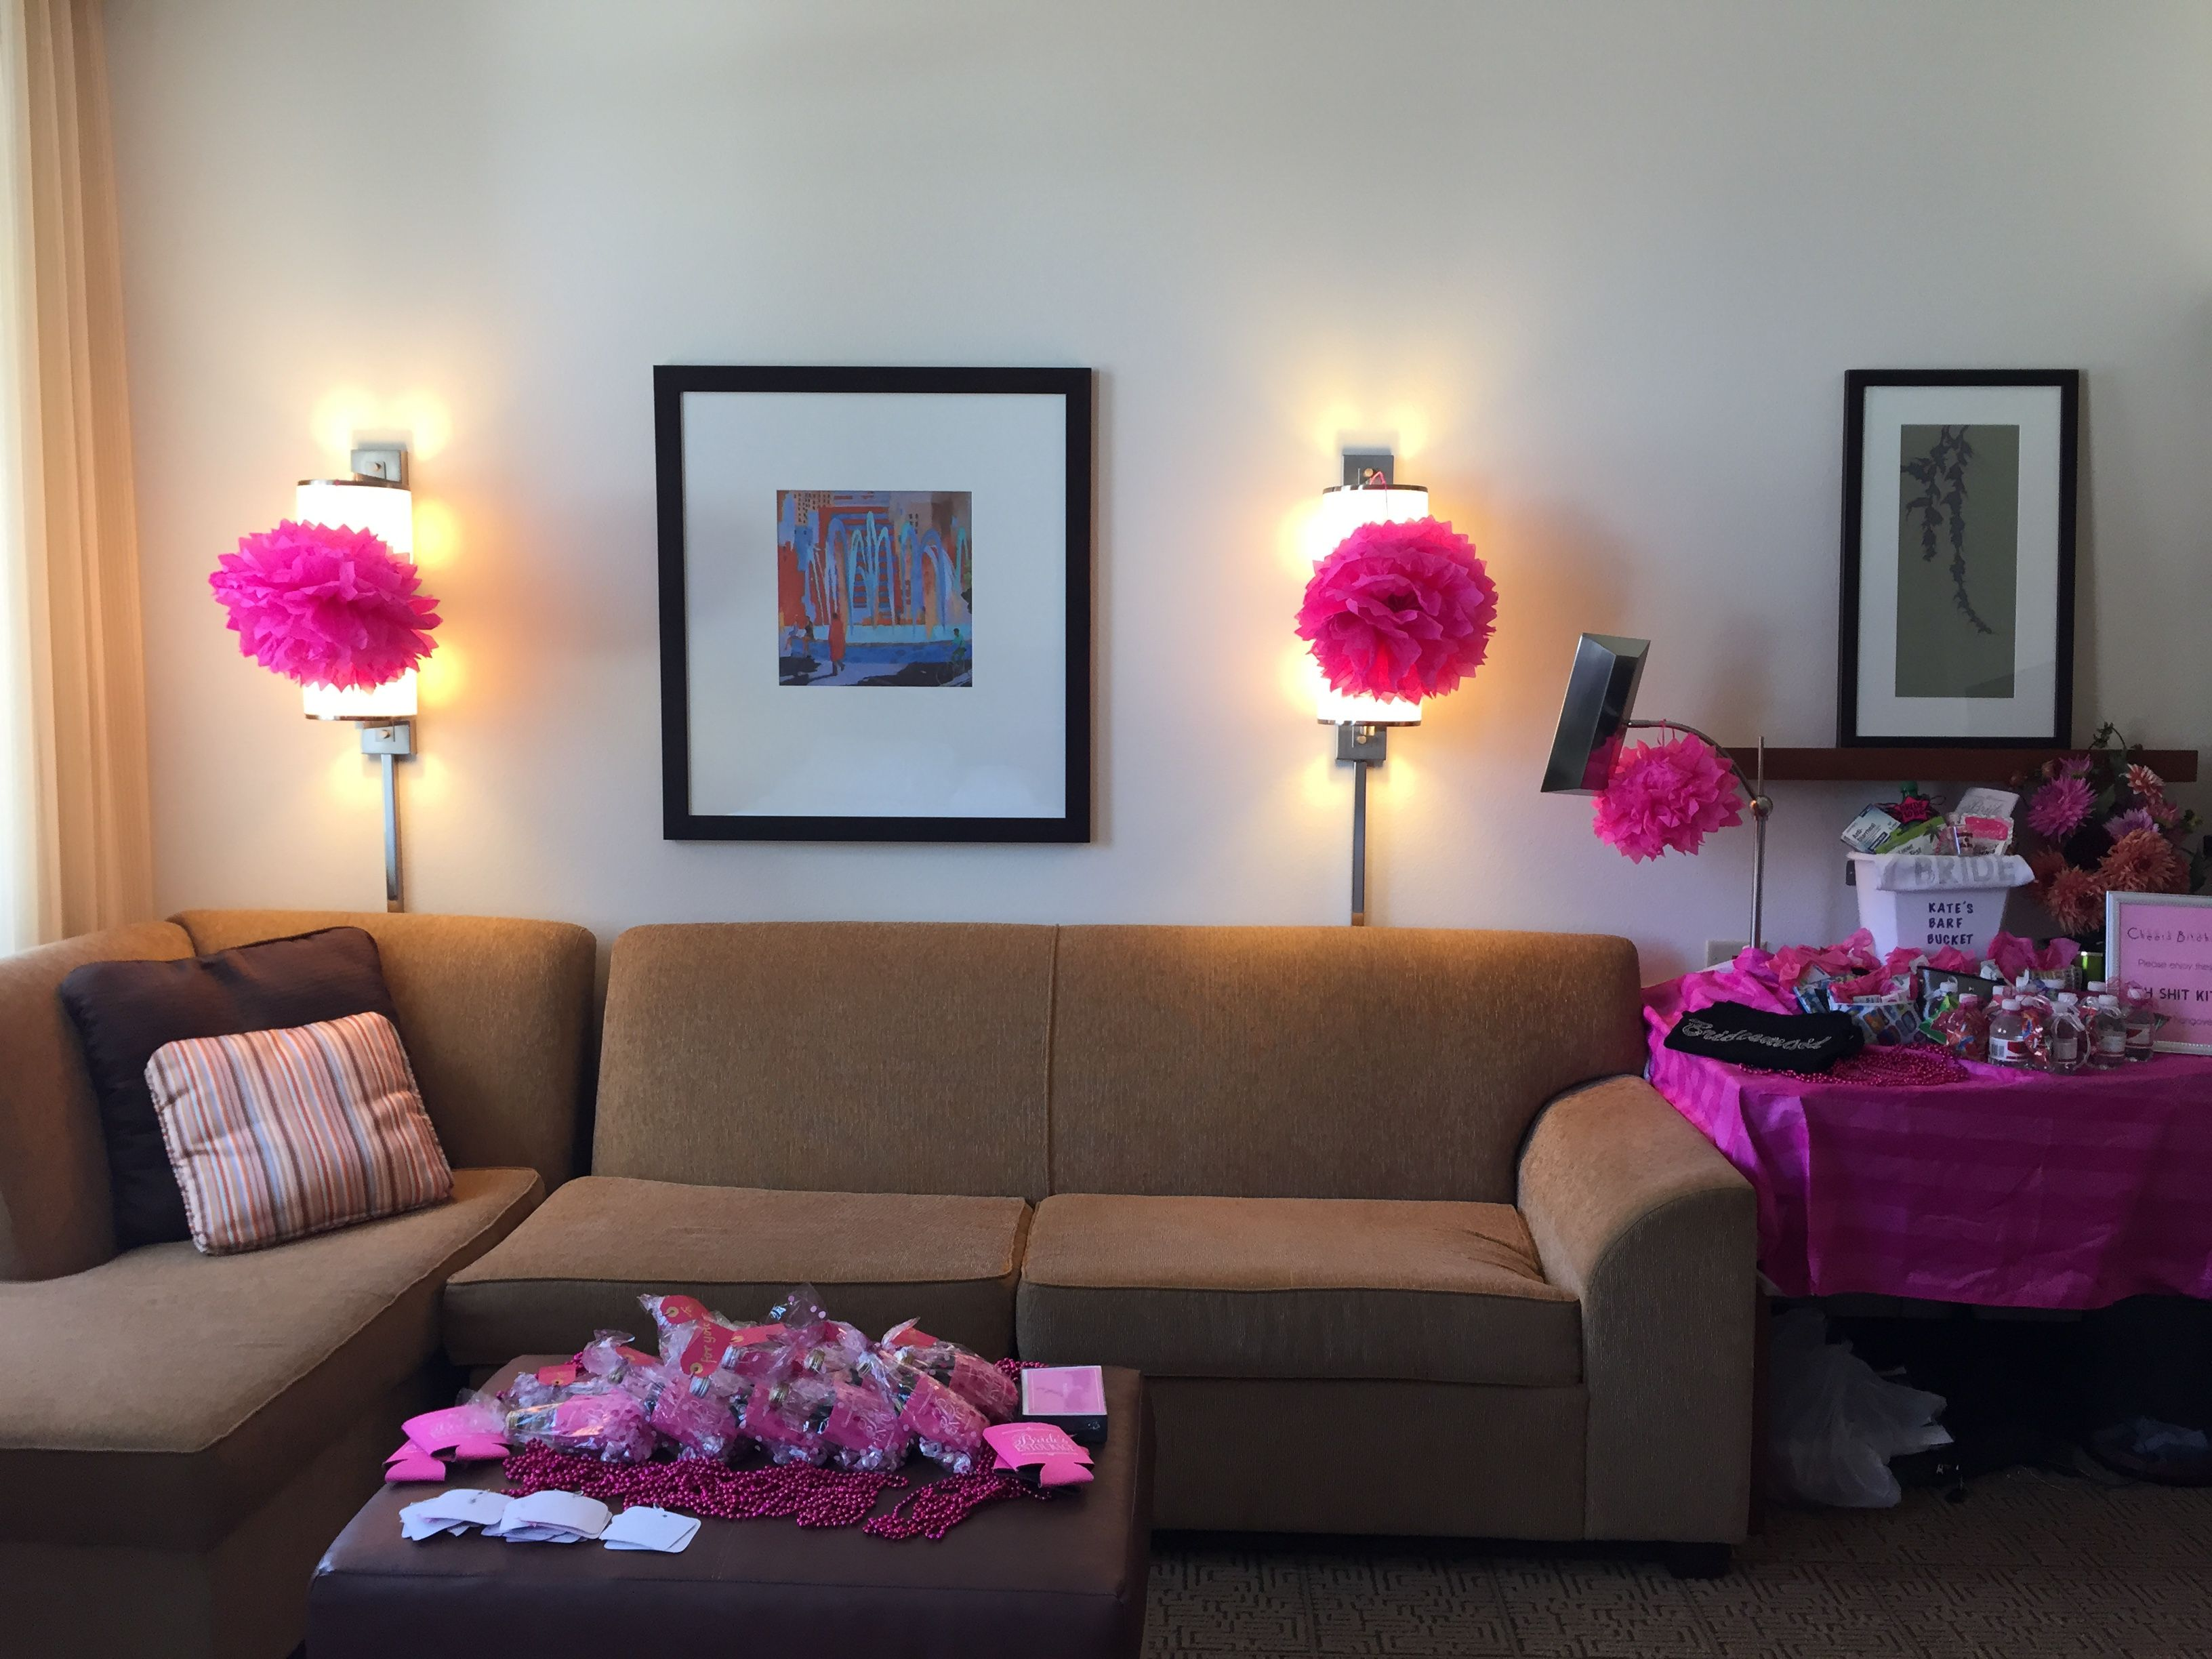 Decoration Hotel Decorating A Hotel Room For A Bridal Shower Or Bachelorette Party